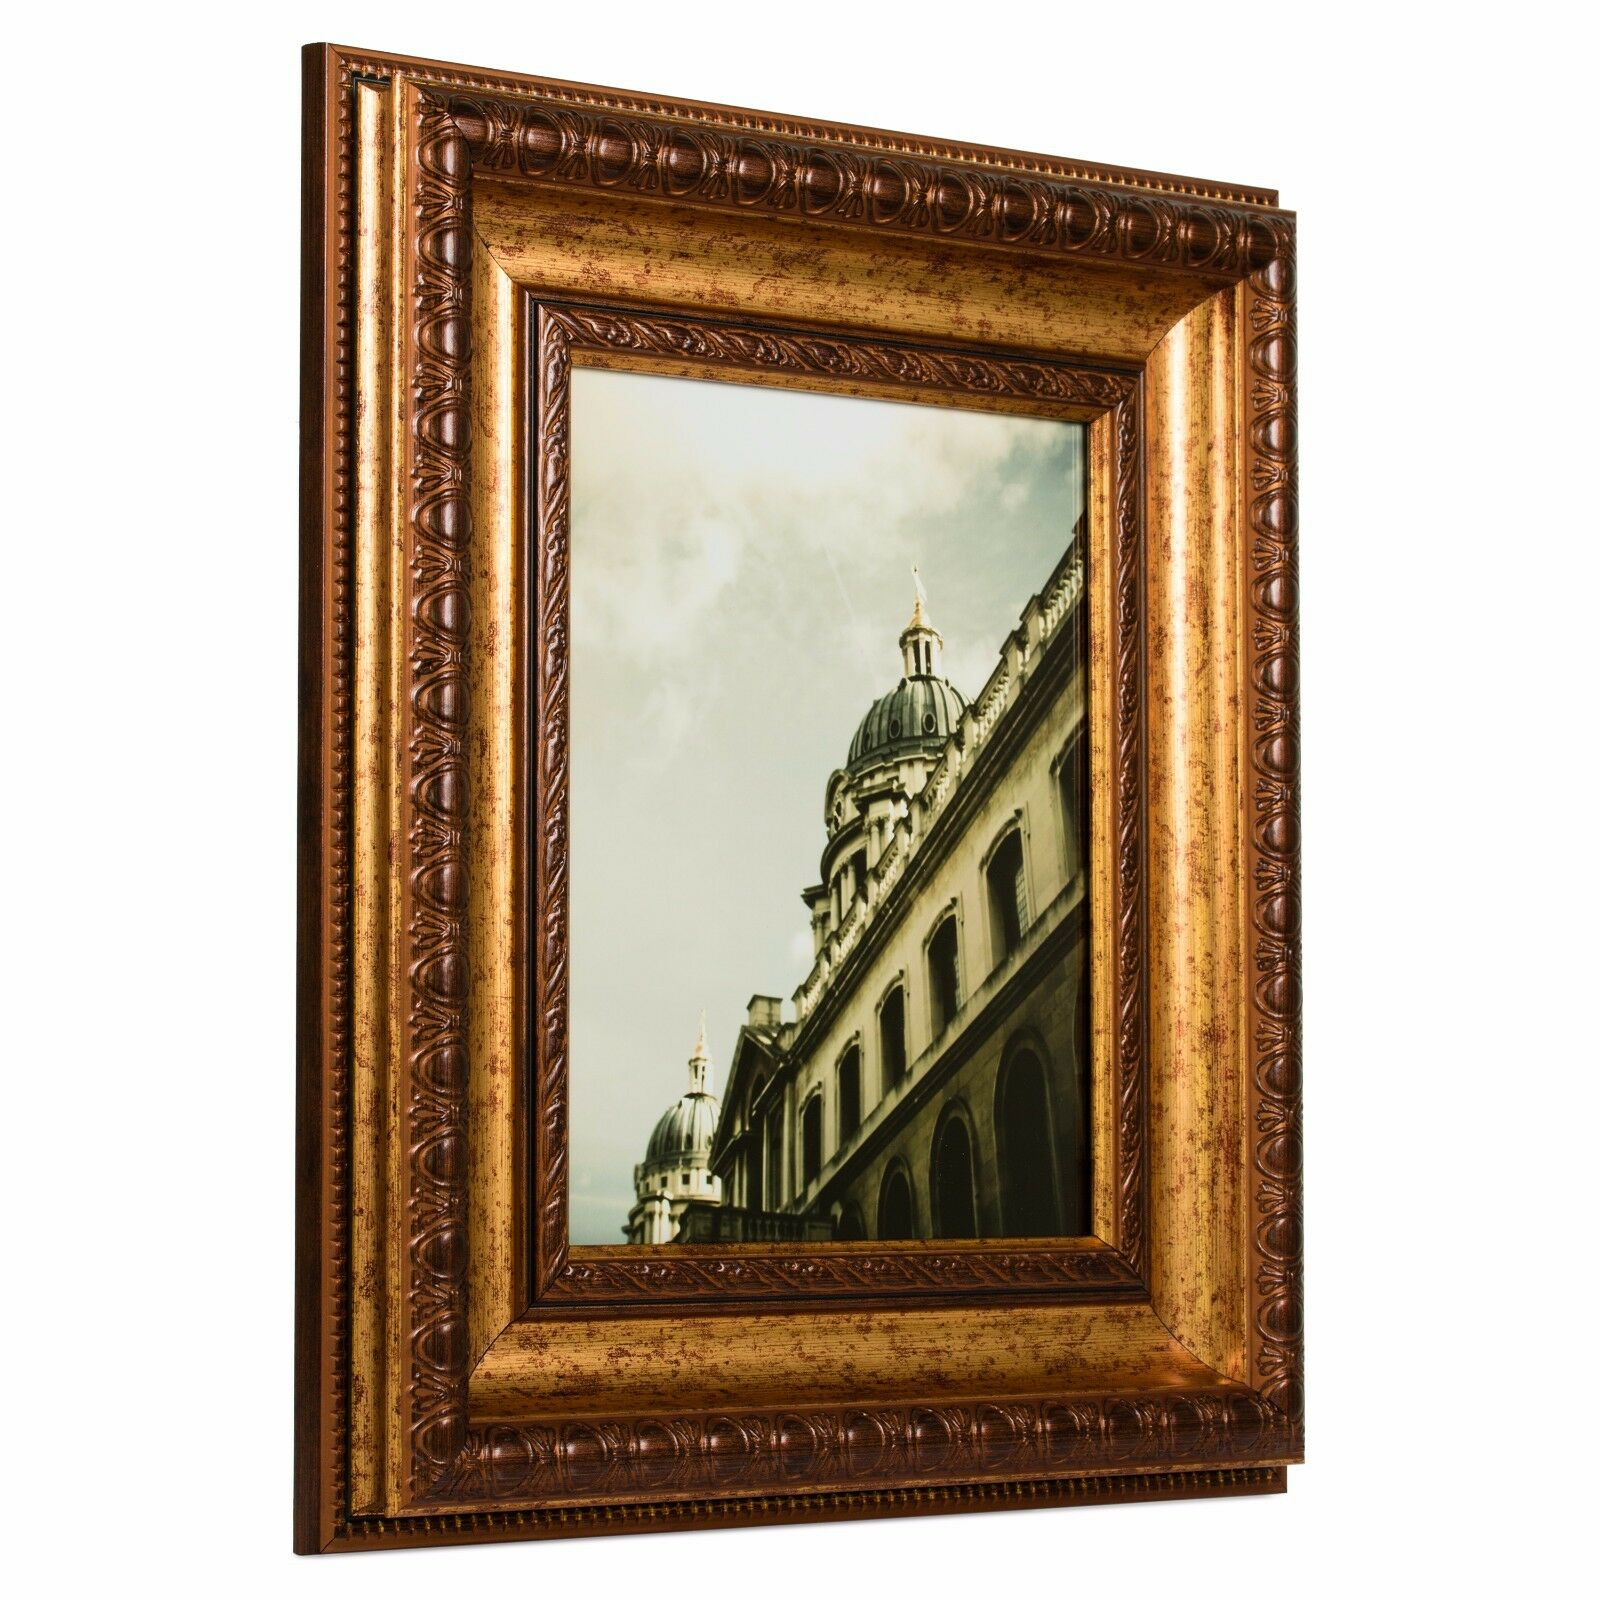 Craig frames aged gold 313 inch french style polystyrene picture 8 jeuxipadfo Gallery